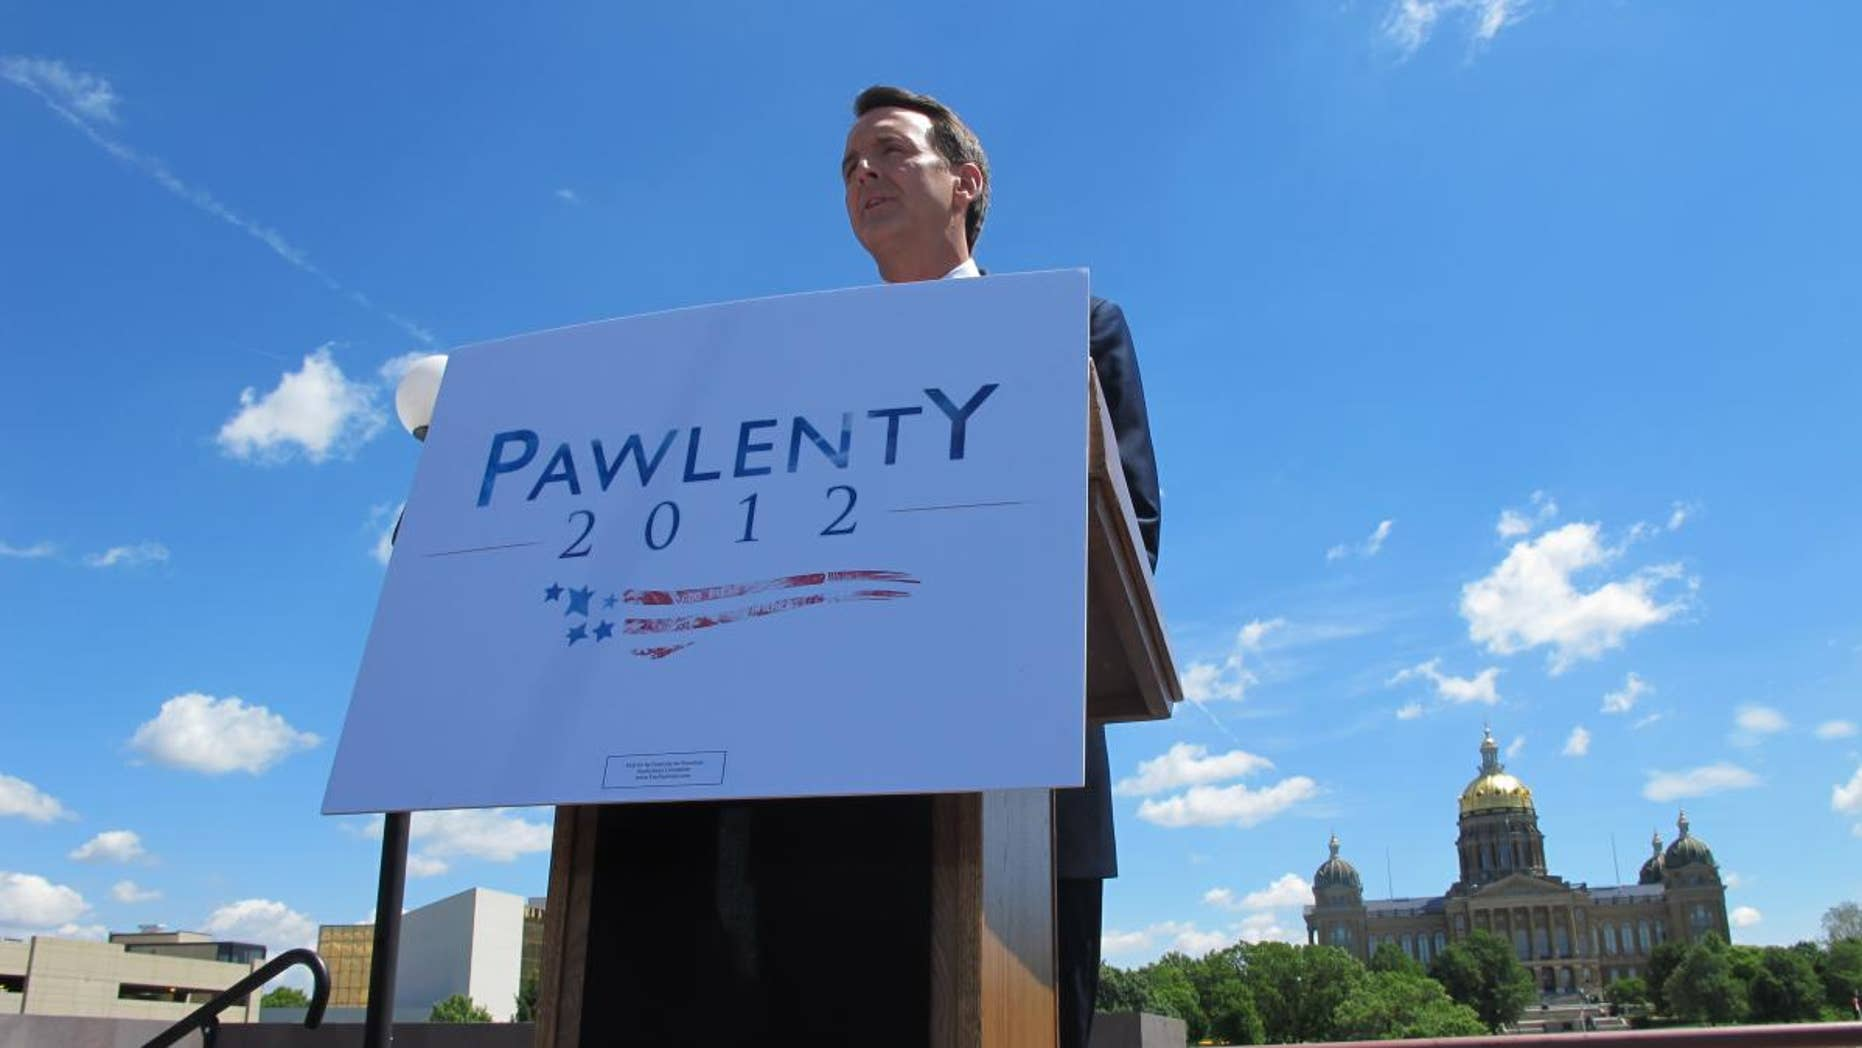 Former Gov. Tim Pawlenty announces he's running for president in Des Moines, IA Monday, May 23, 2011 (Fox News Photo)